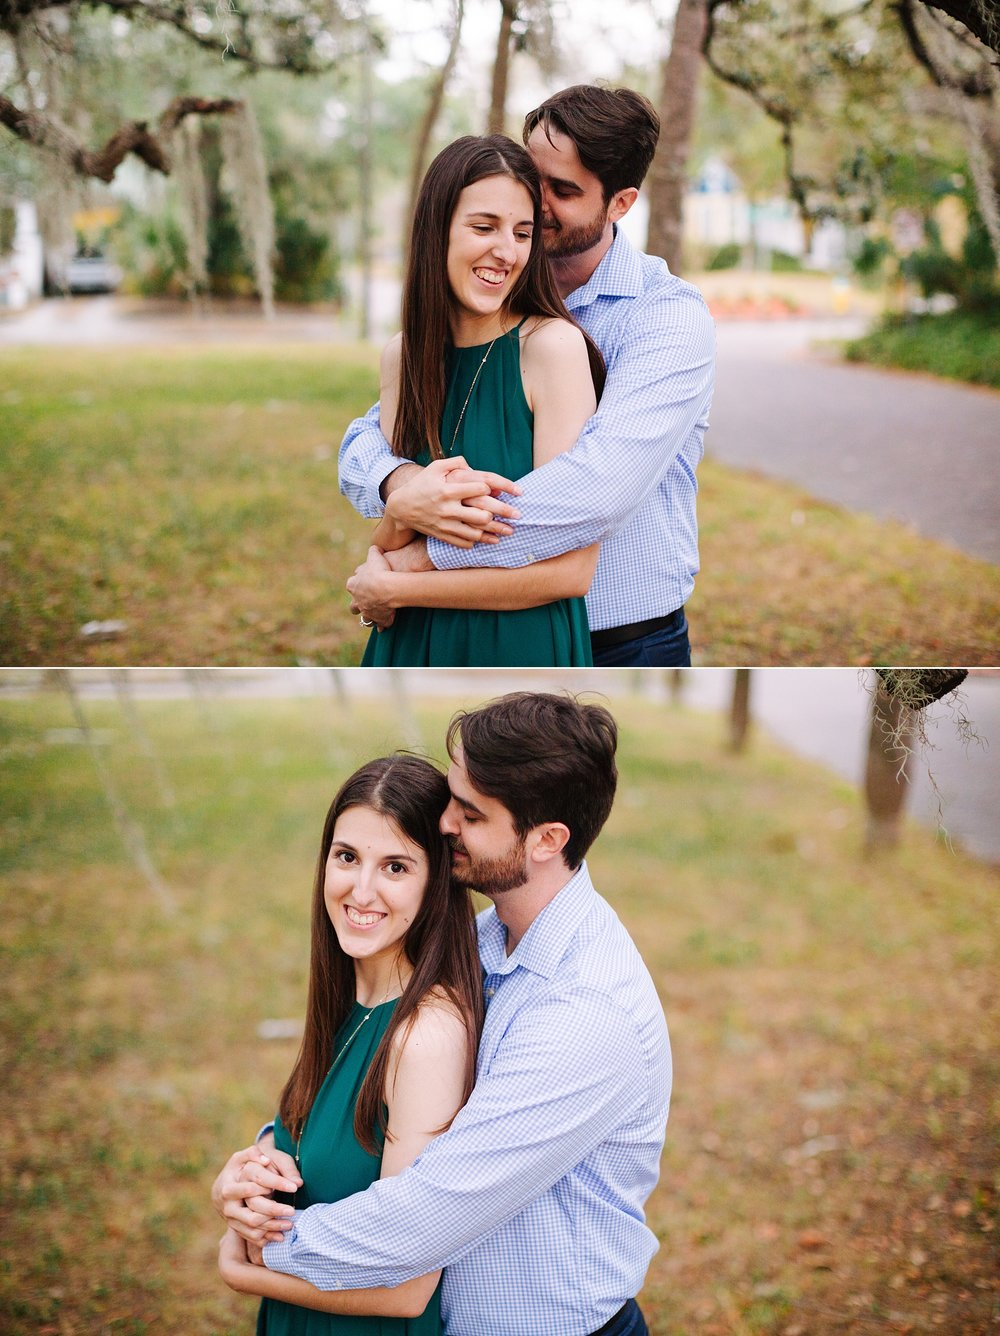 Jake & Katie Photography Seminole Heights Engagement Photos David & Cailyn-019.jpg